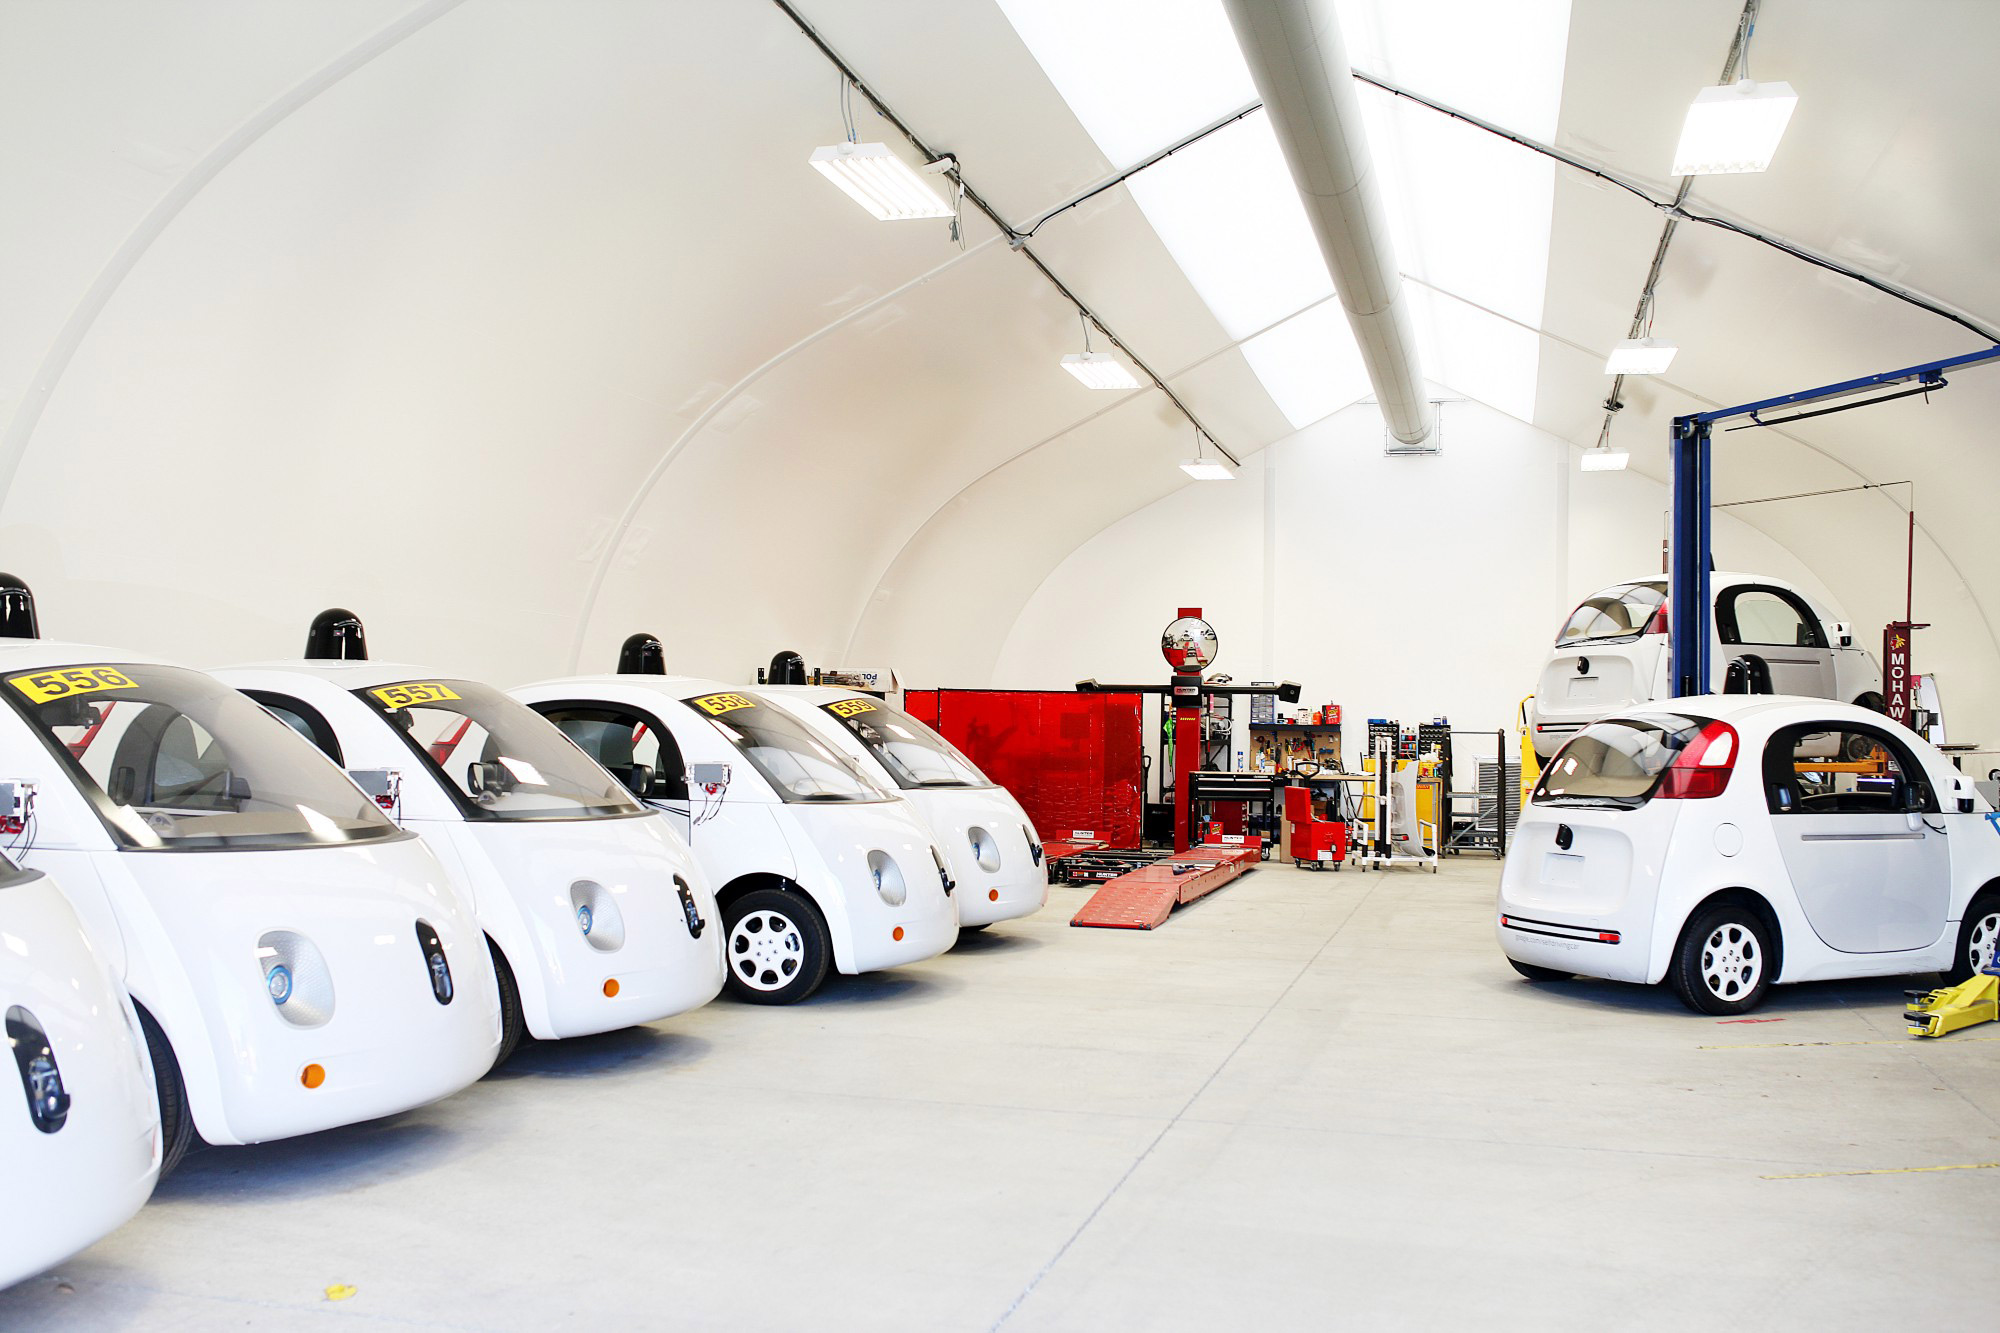 Google Car fleet garage